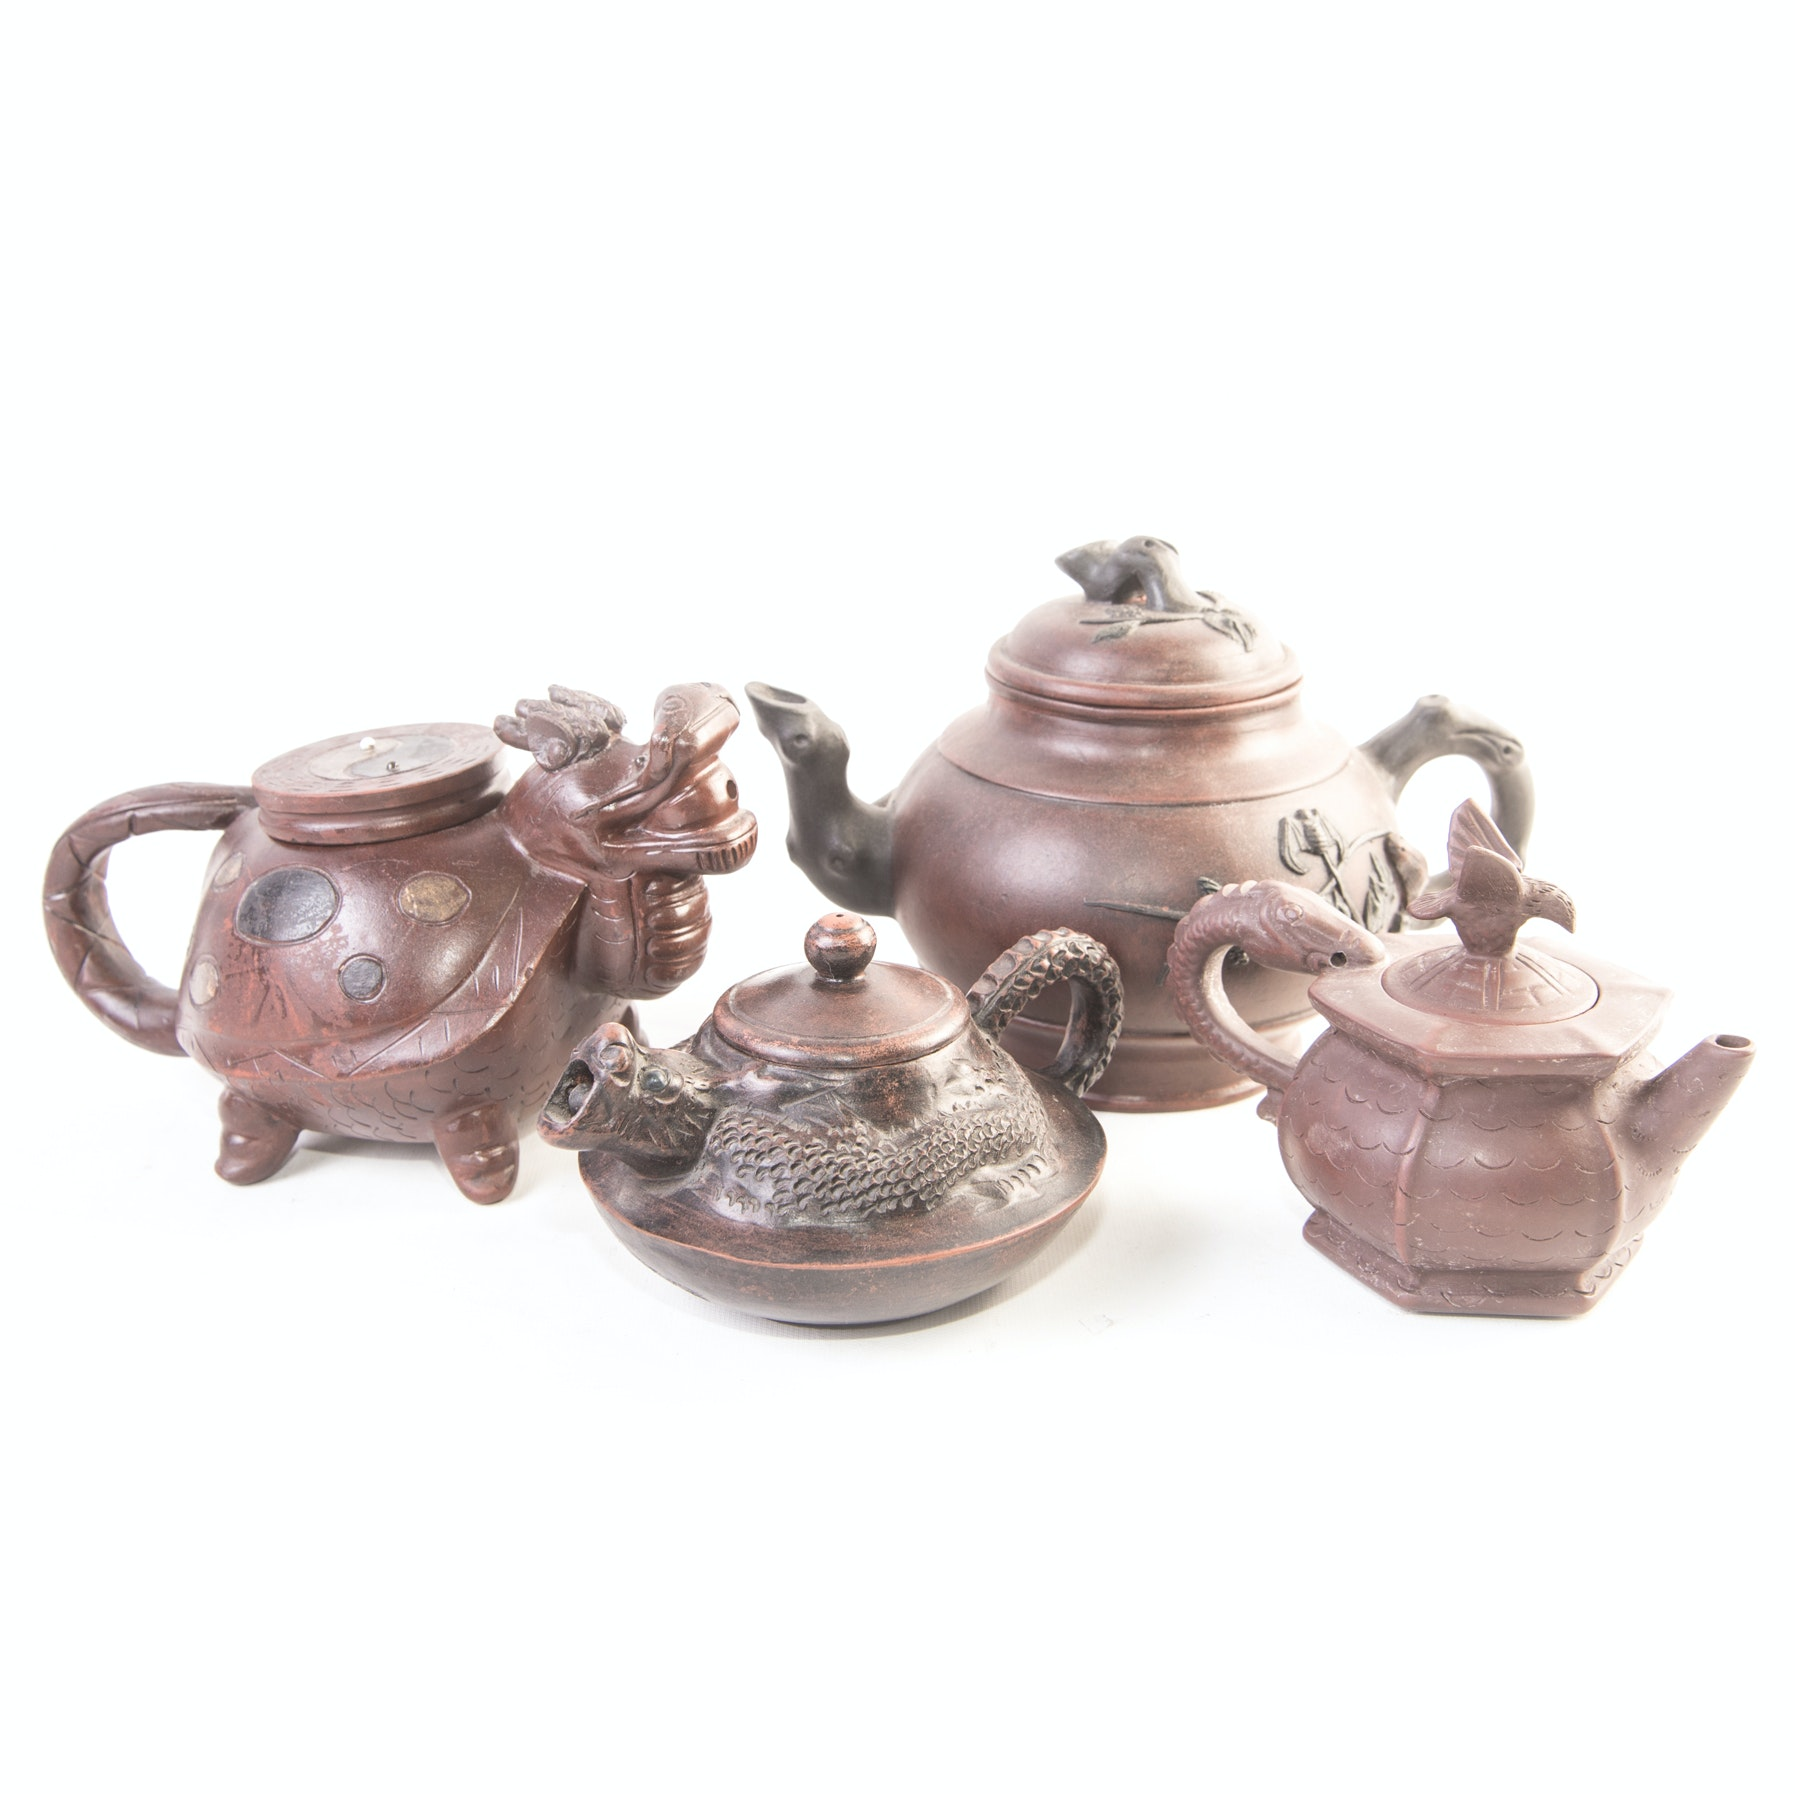 Decorative Asian Teapots